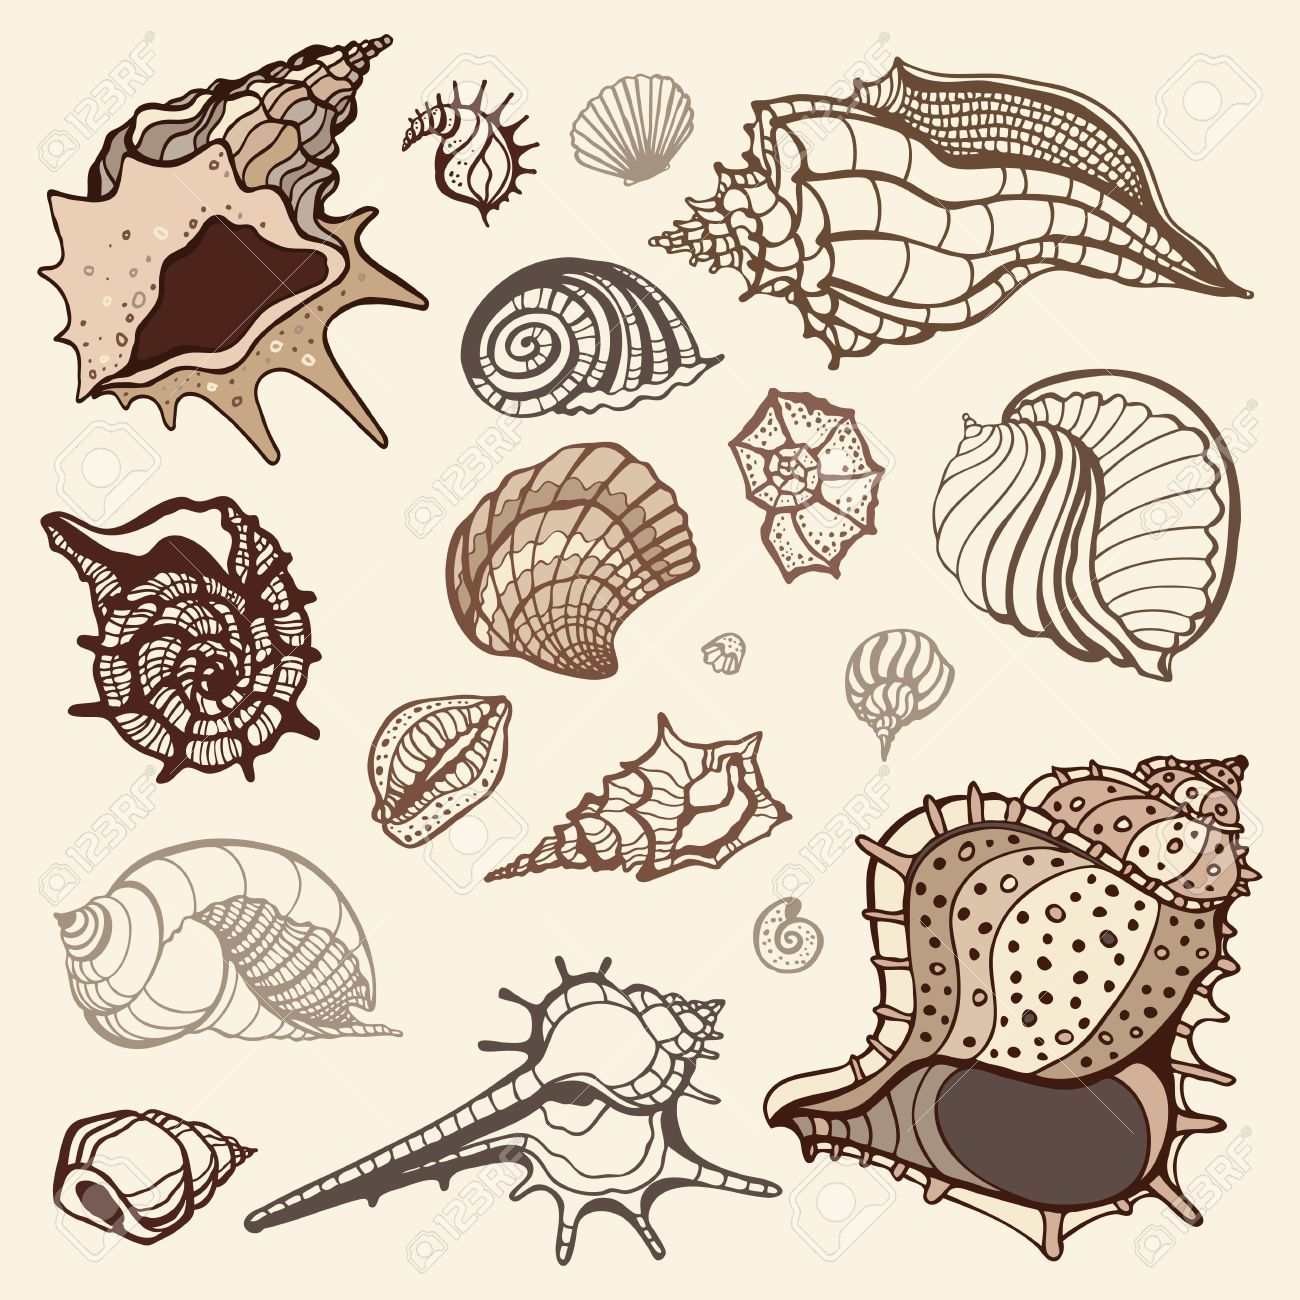 Oyster clipart fossil shell. Oysters stock vector illustration picture freeuse library